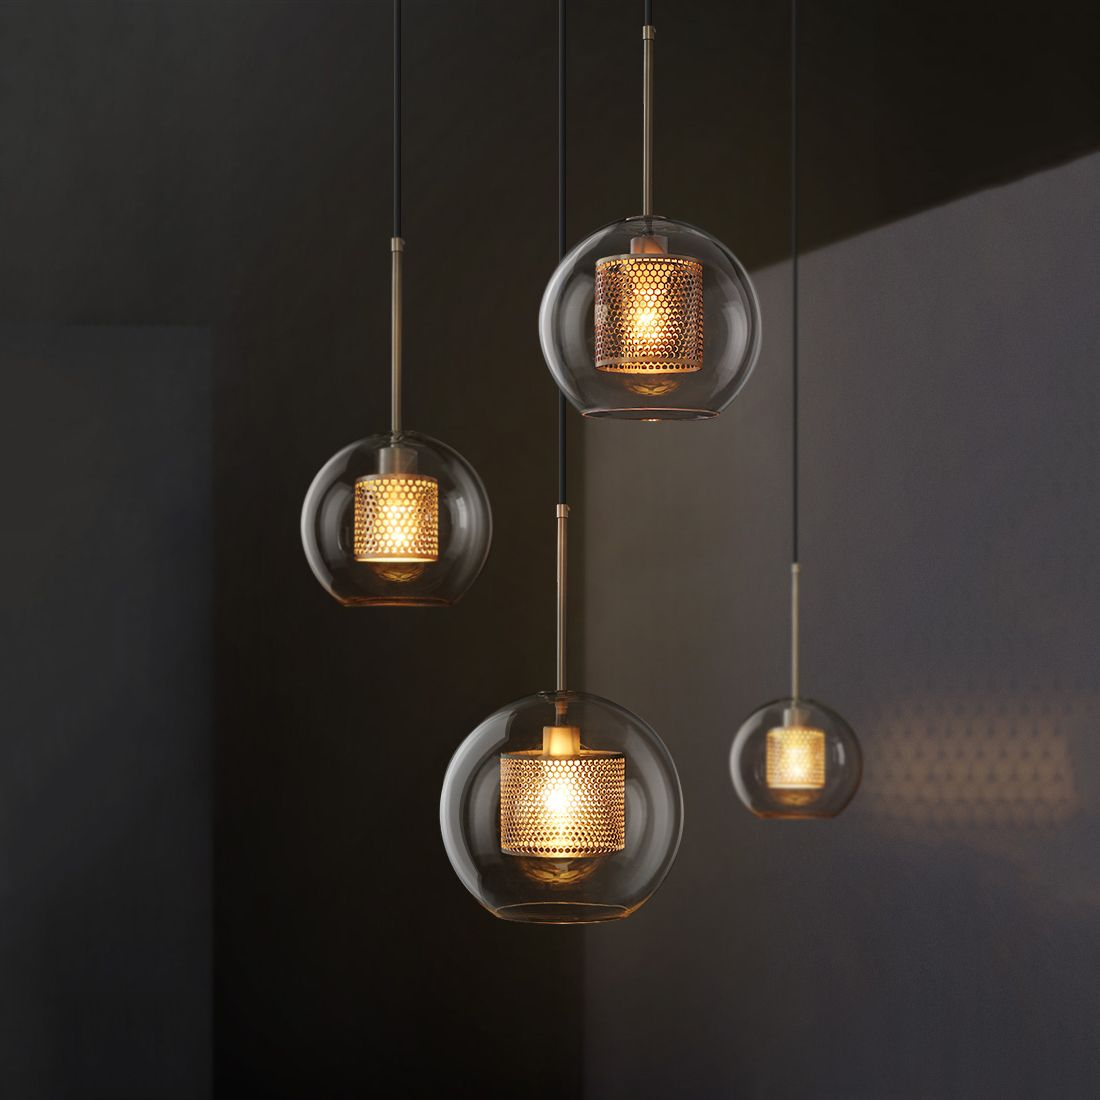 Mesh Glass Shade 10 Light Globe Pendant Lamps in Industrial Style